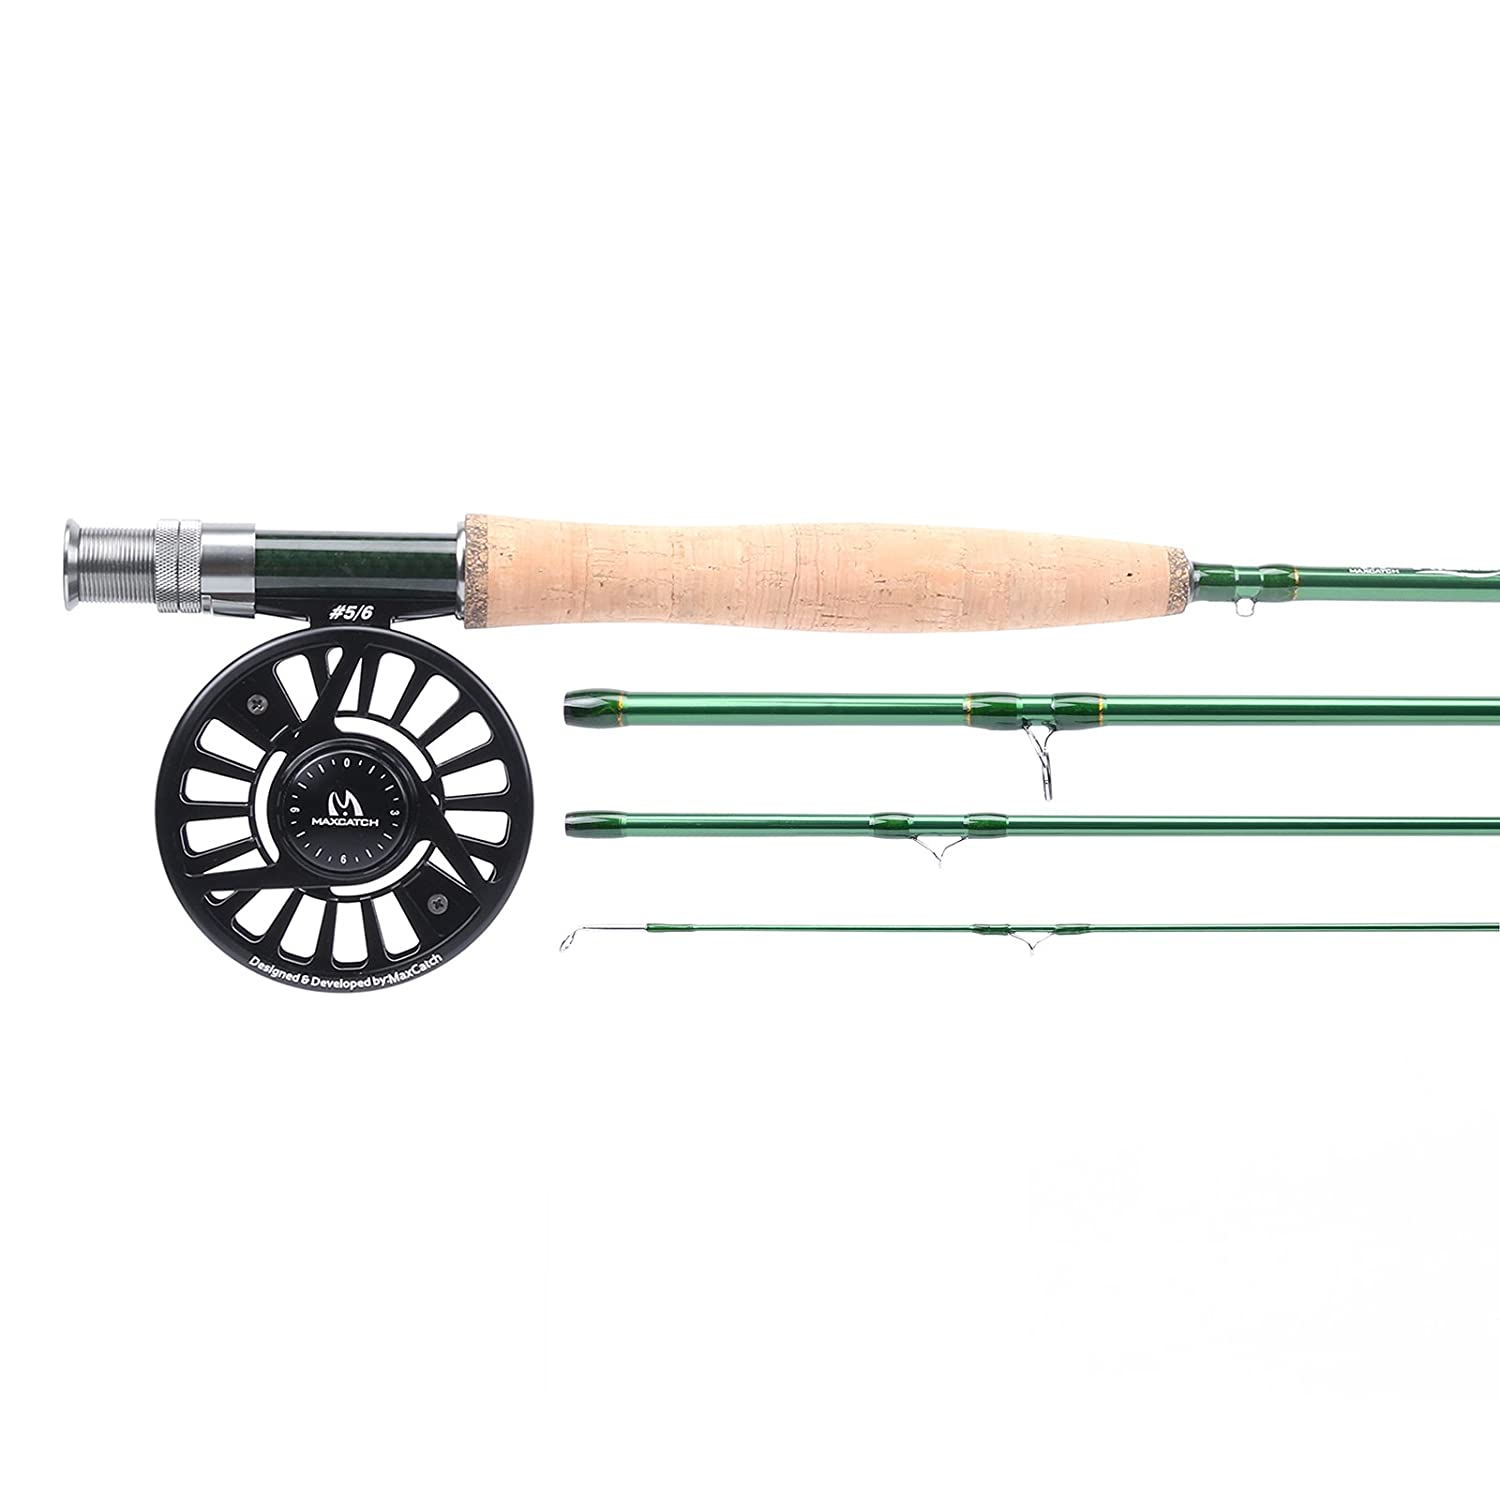 Maxcatch Premier Fly Fishing Rod with Avidフライリールとロッドケース: 3 / 4、5 / 6、7 / 8-weightロッドとリールコンボ B01NCIO589 8'6'' 4wt rod+3/4wt reel|Model02 Model02 8'6'' 4wt rod+3/4wt reel